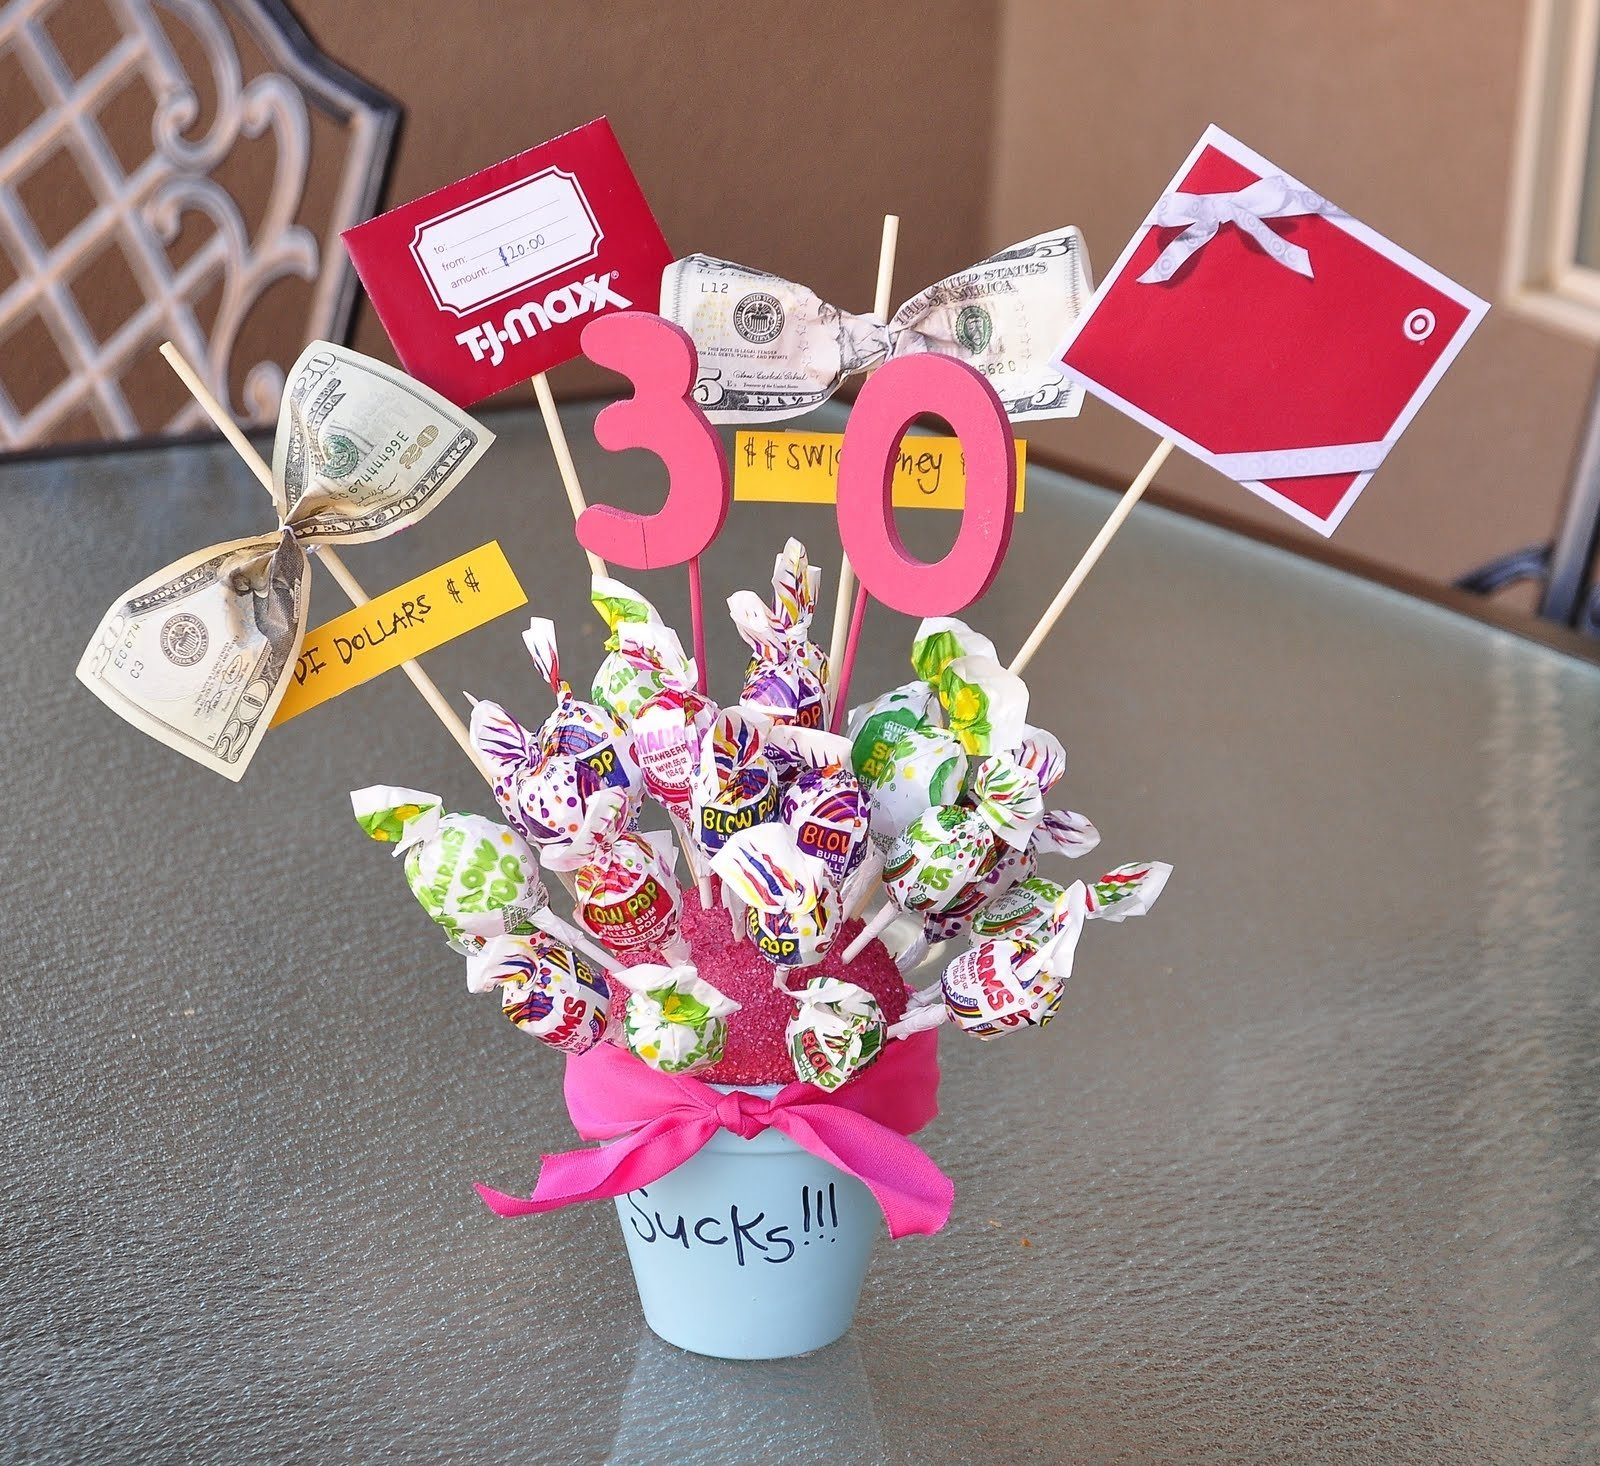 10 Most Recommended Creative Gift Ideas For Wife creative gift ideas for husband 1 weddings eve 2021